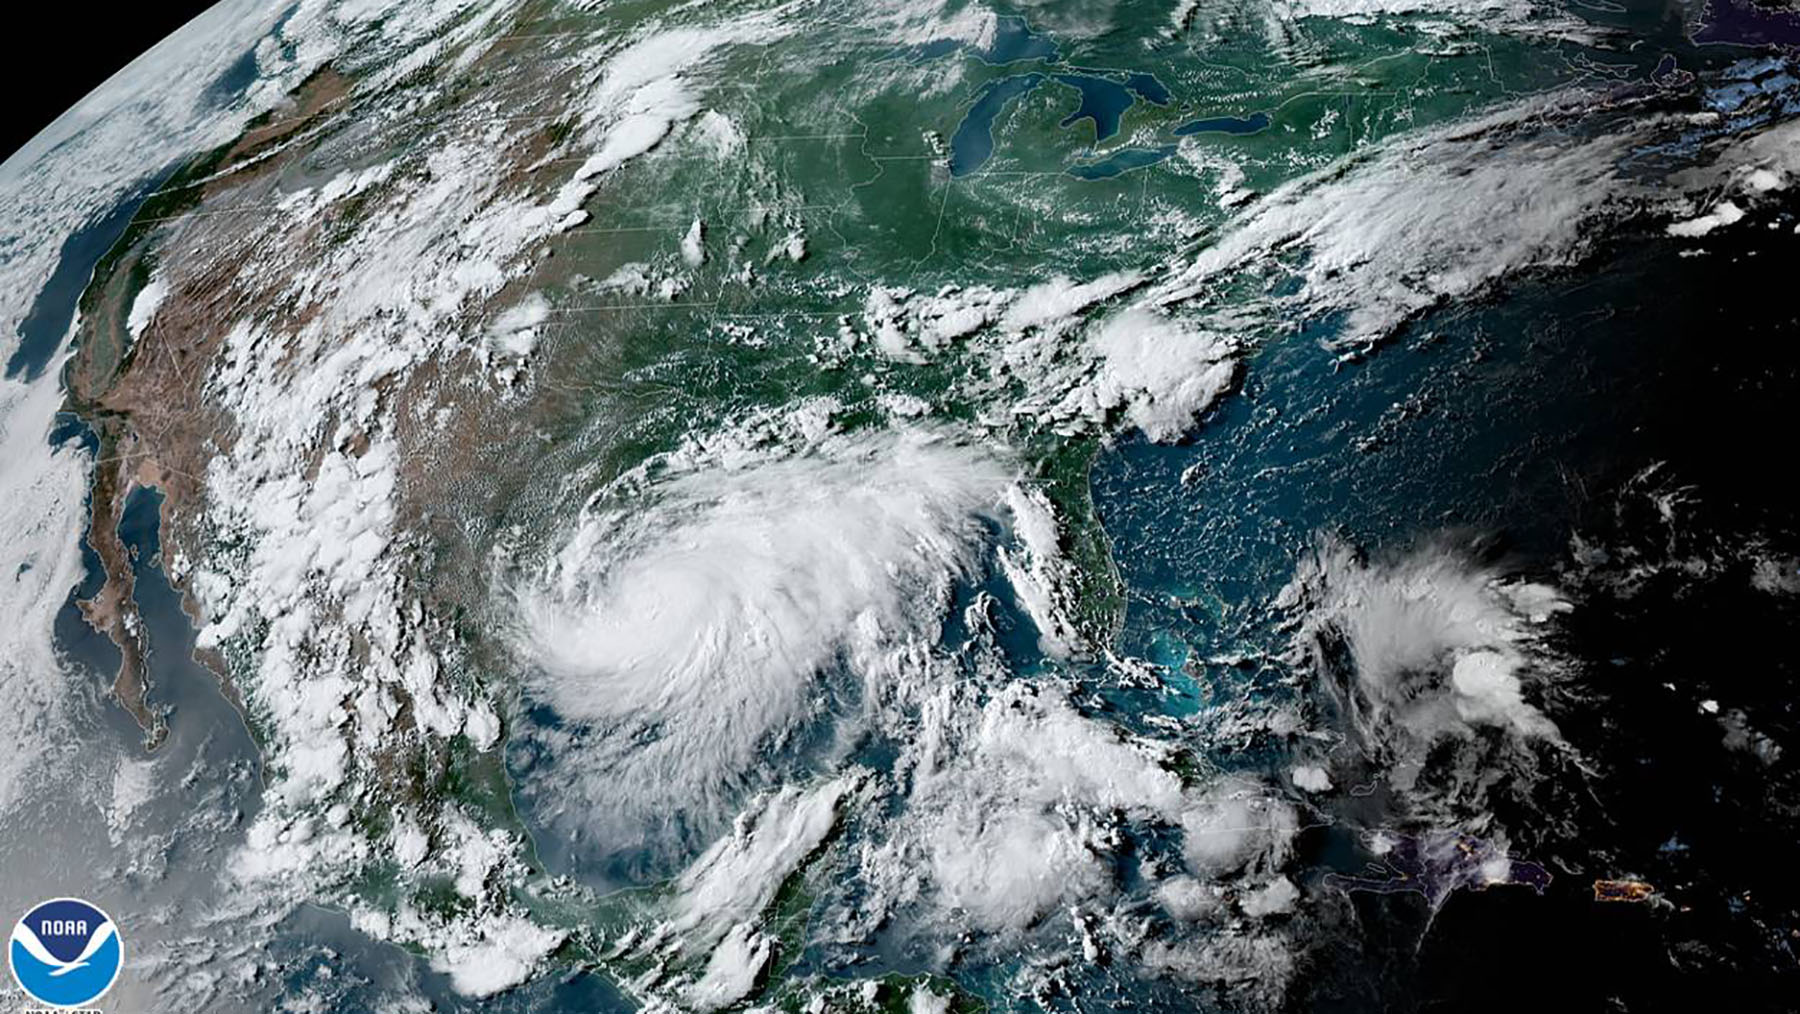 Tropical Storm Hanna, pictured left, is barreling towards the Texas coast, while Tropical Storm Gonzalo continues its path through the Caribbean. (NOAA photo)